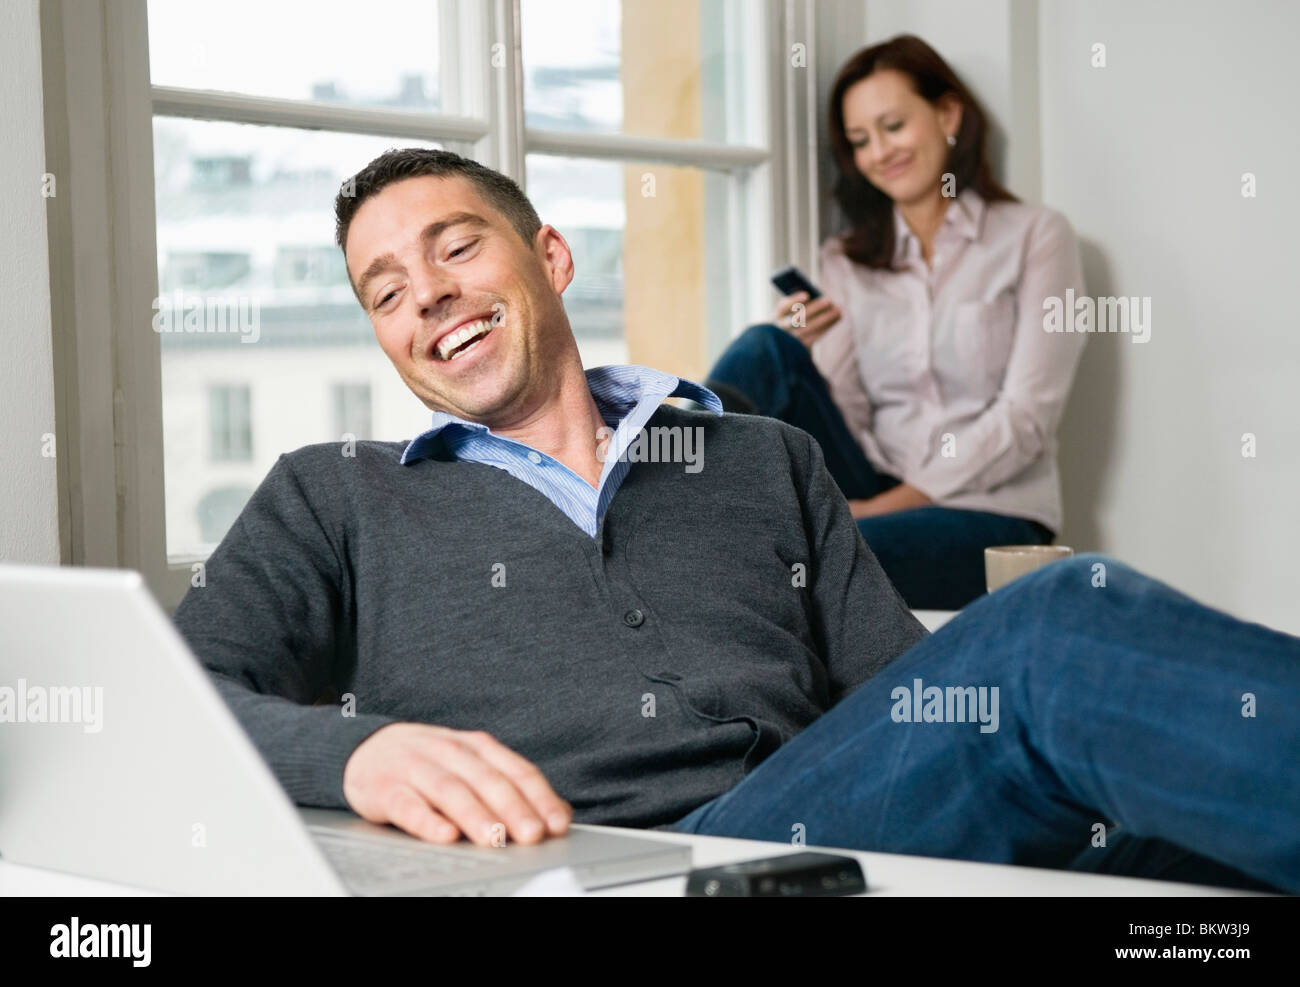 Laidback coworkers at office - Stock Image